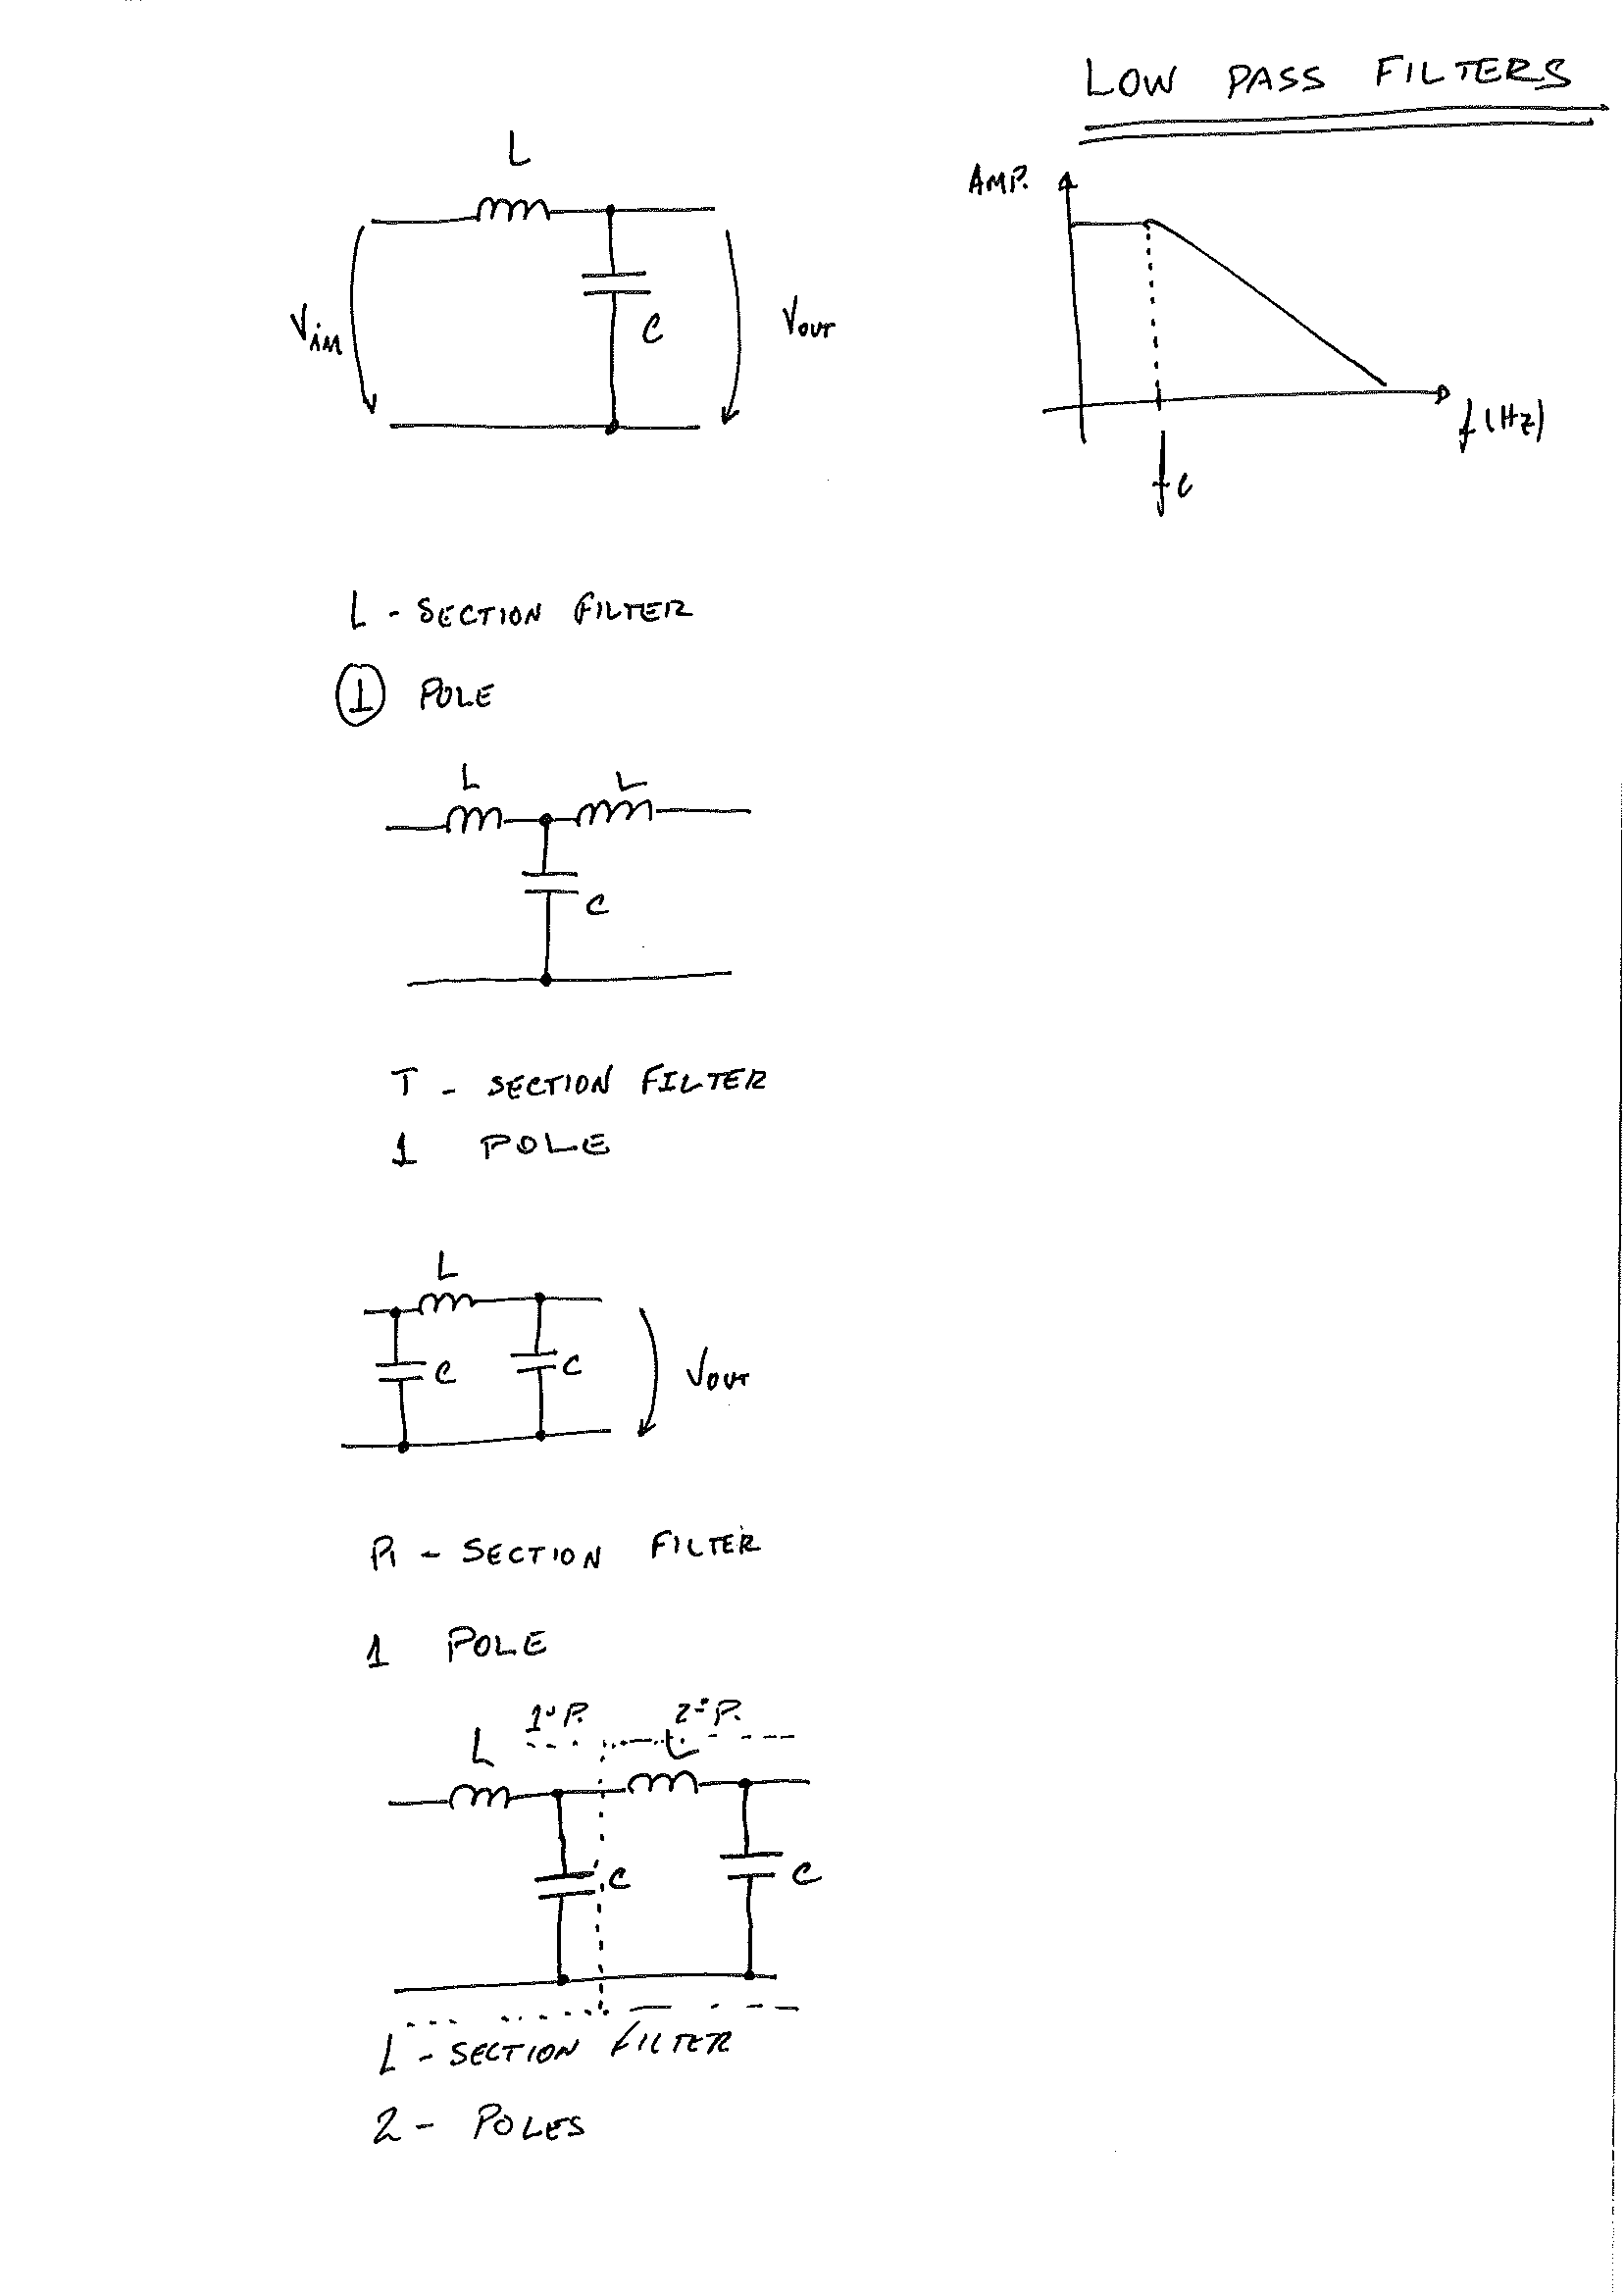 how to design a lc low pass filter